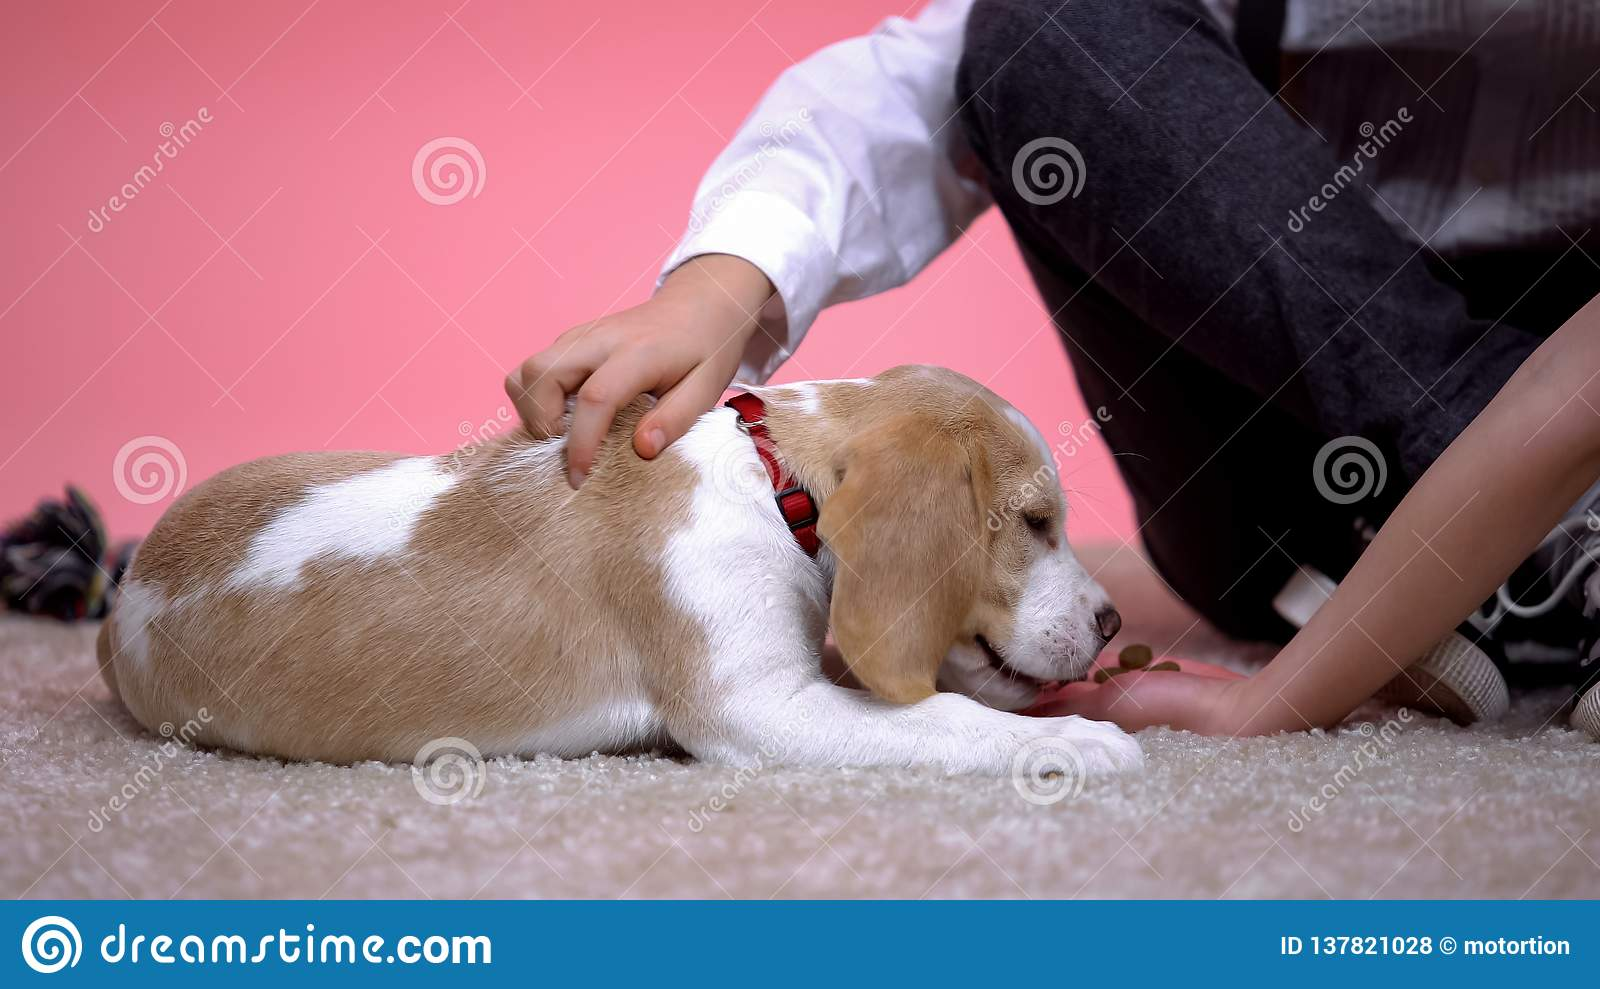 Kids petting and feeding beagle puppy, family pet, birthday gift for children